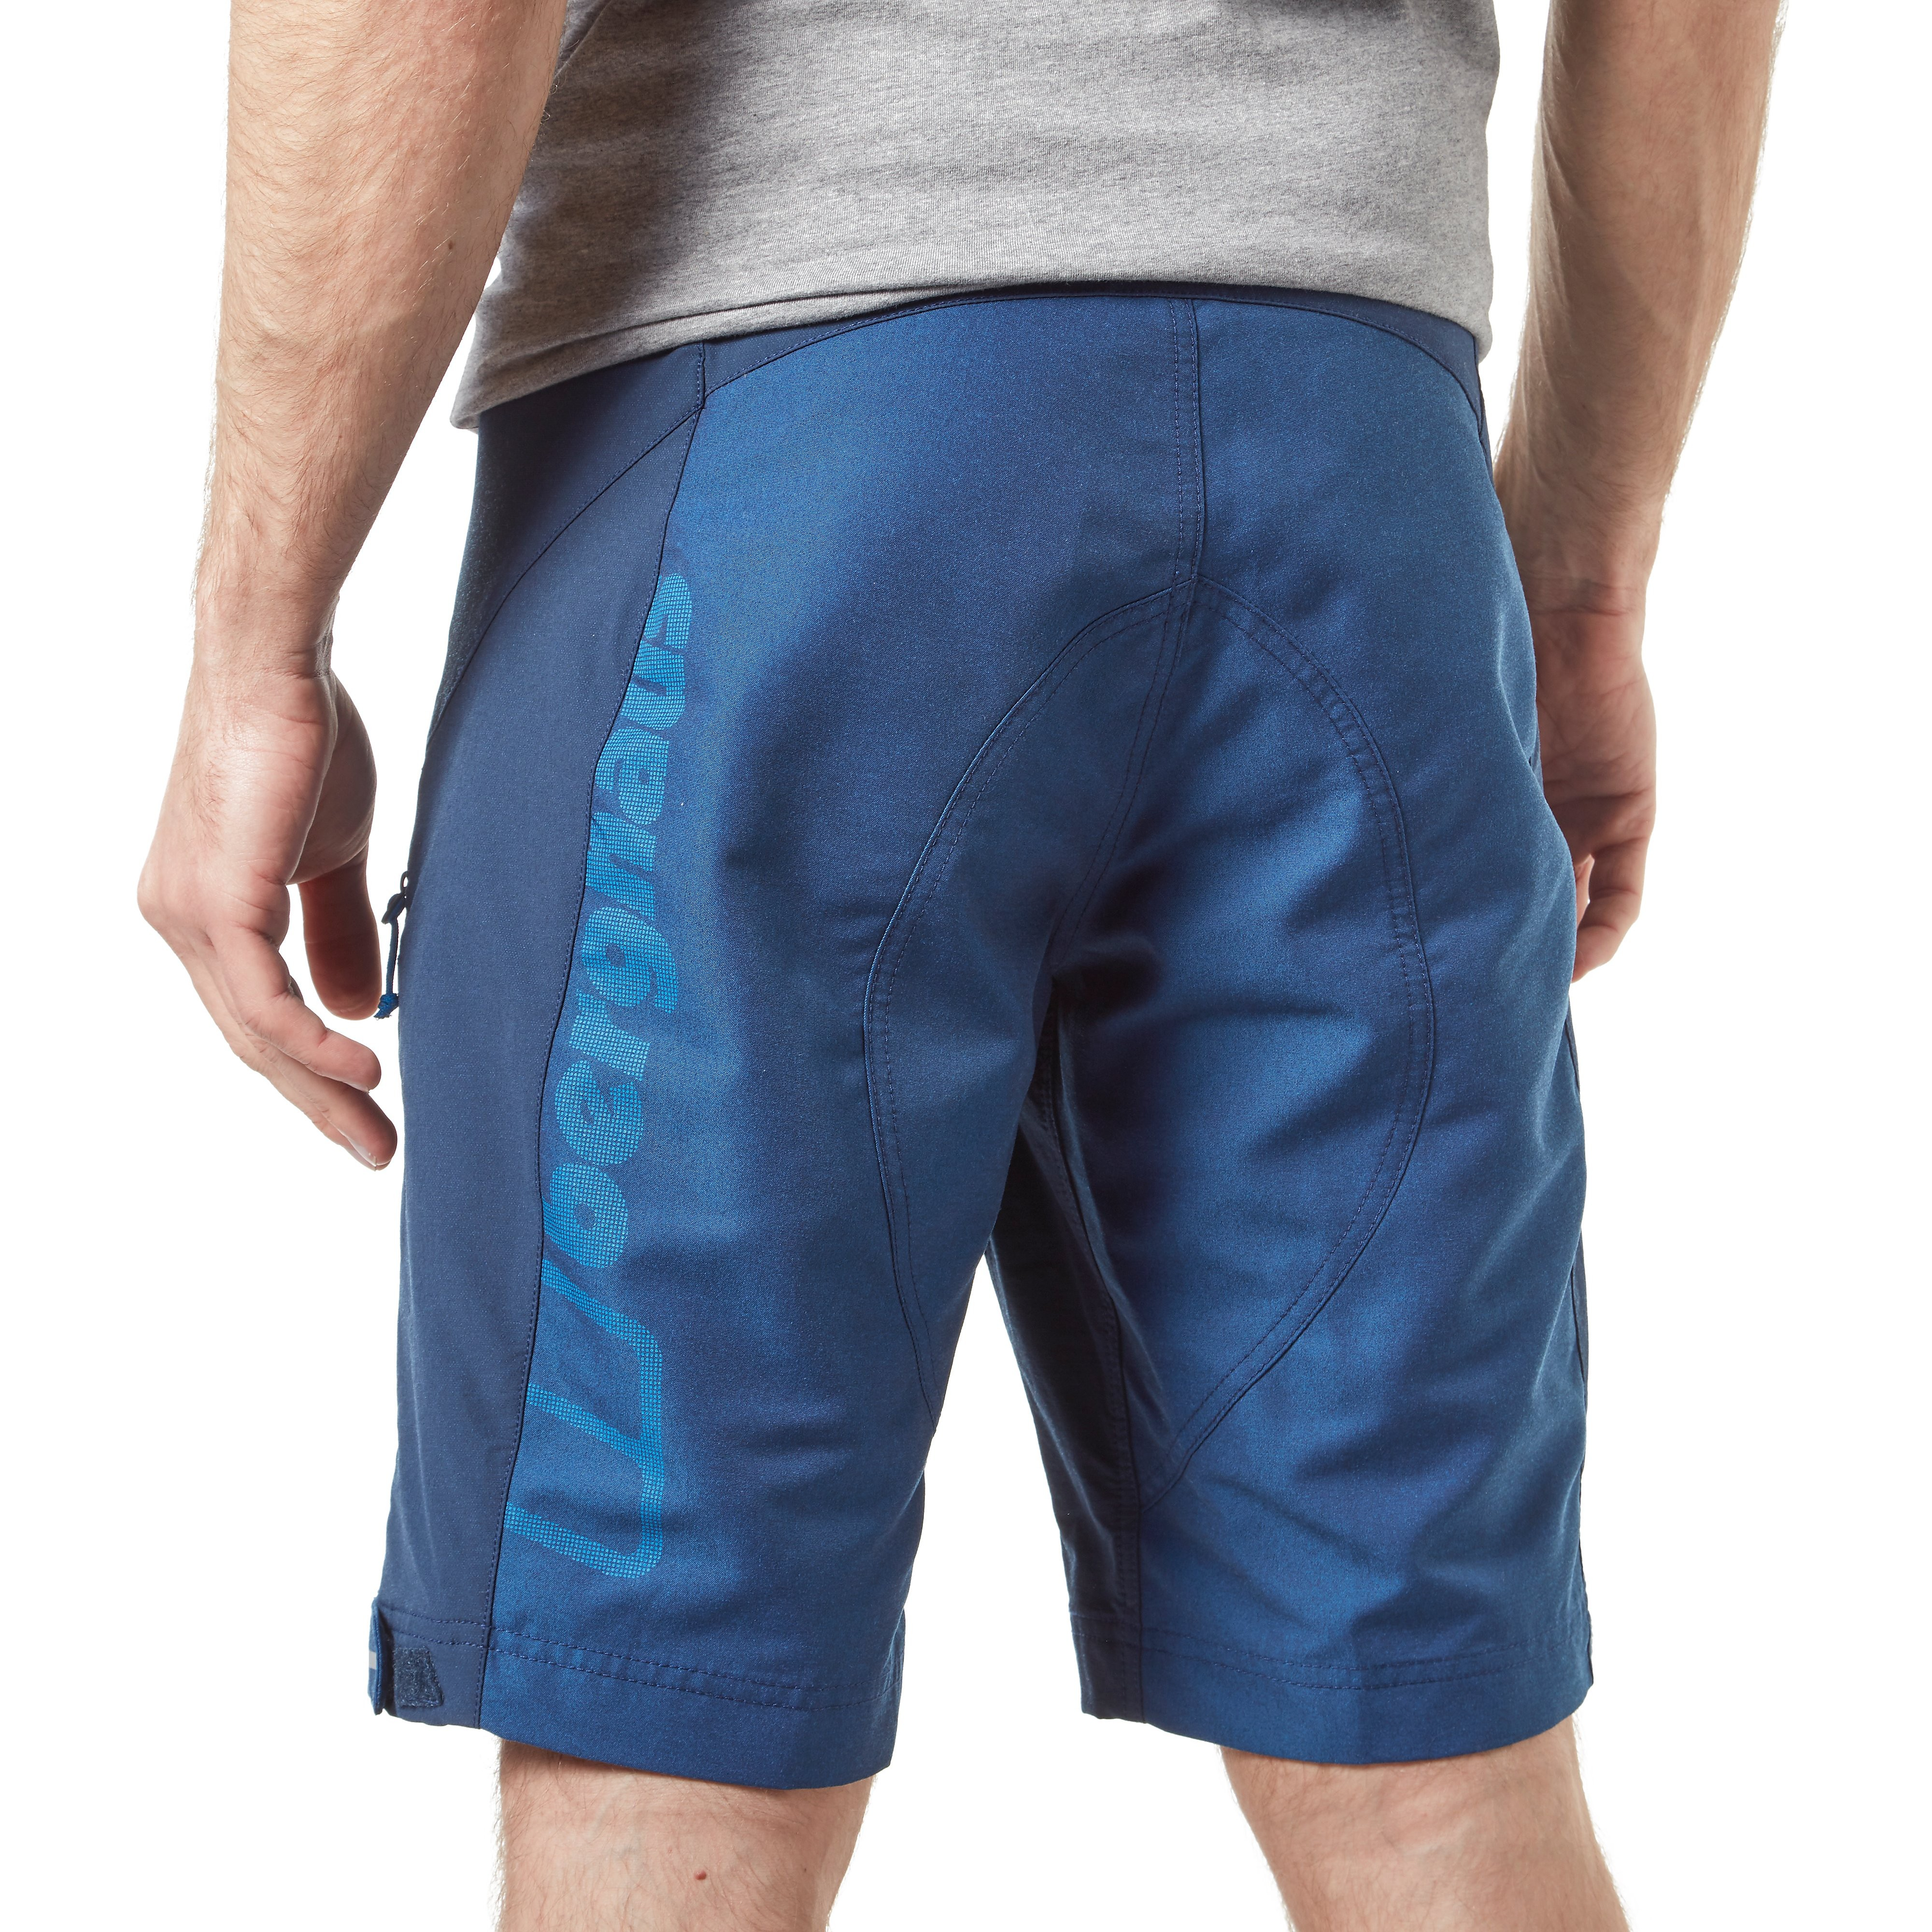 Berghaus Baggy Men's Shorts